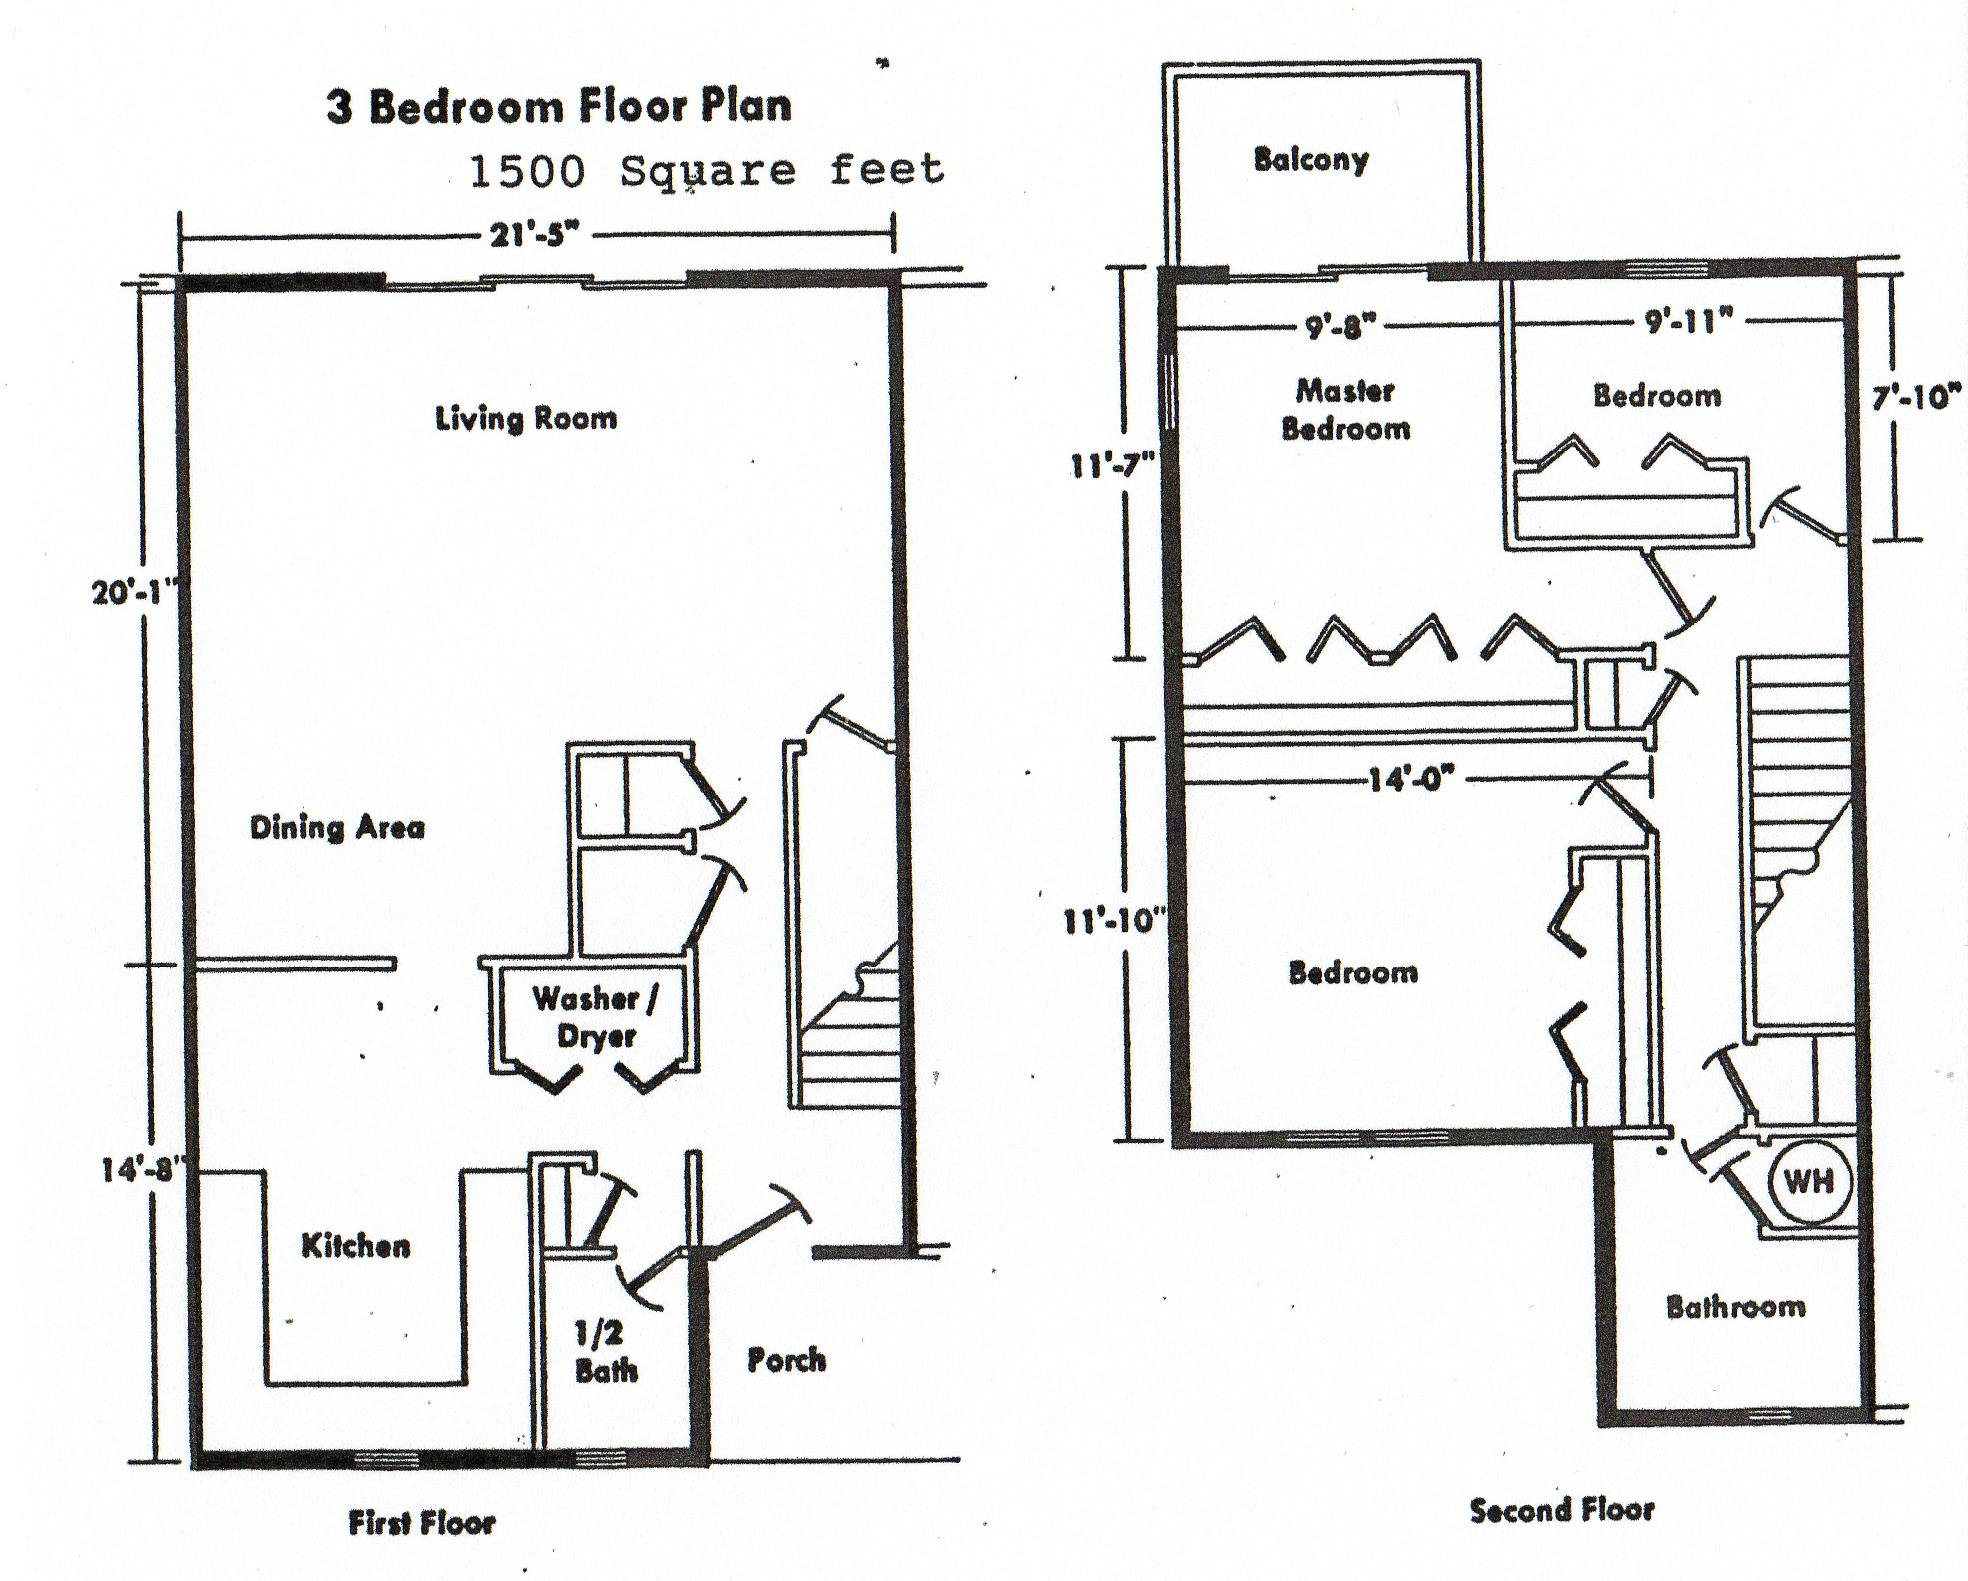 10 bedroom house floor plans designs mansion bedrooms two for 10 bedroom mansion